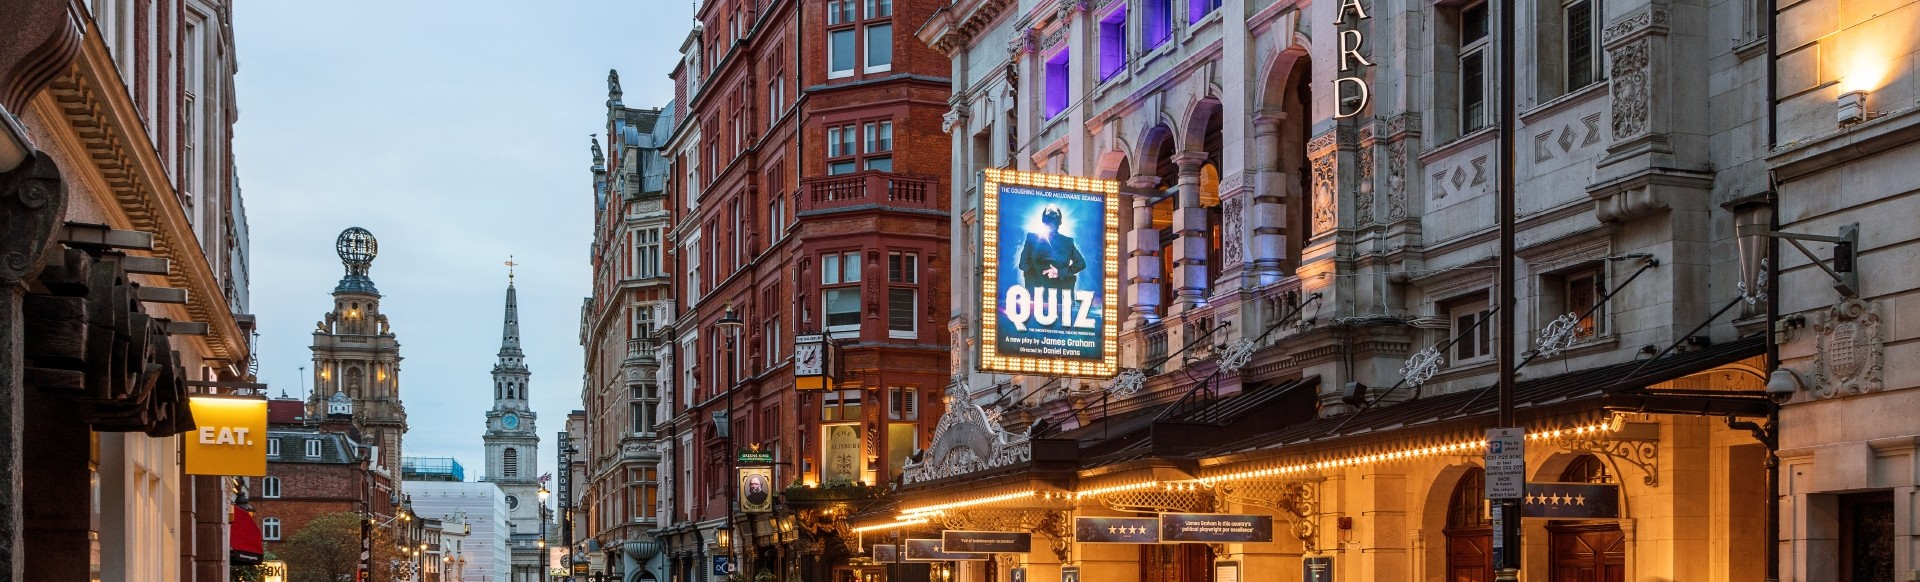 A panoramic view of Theatreland in London